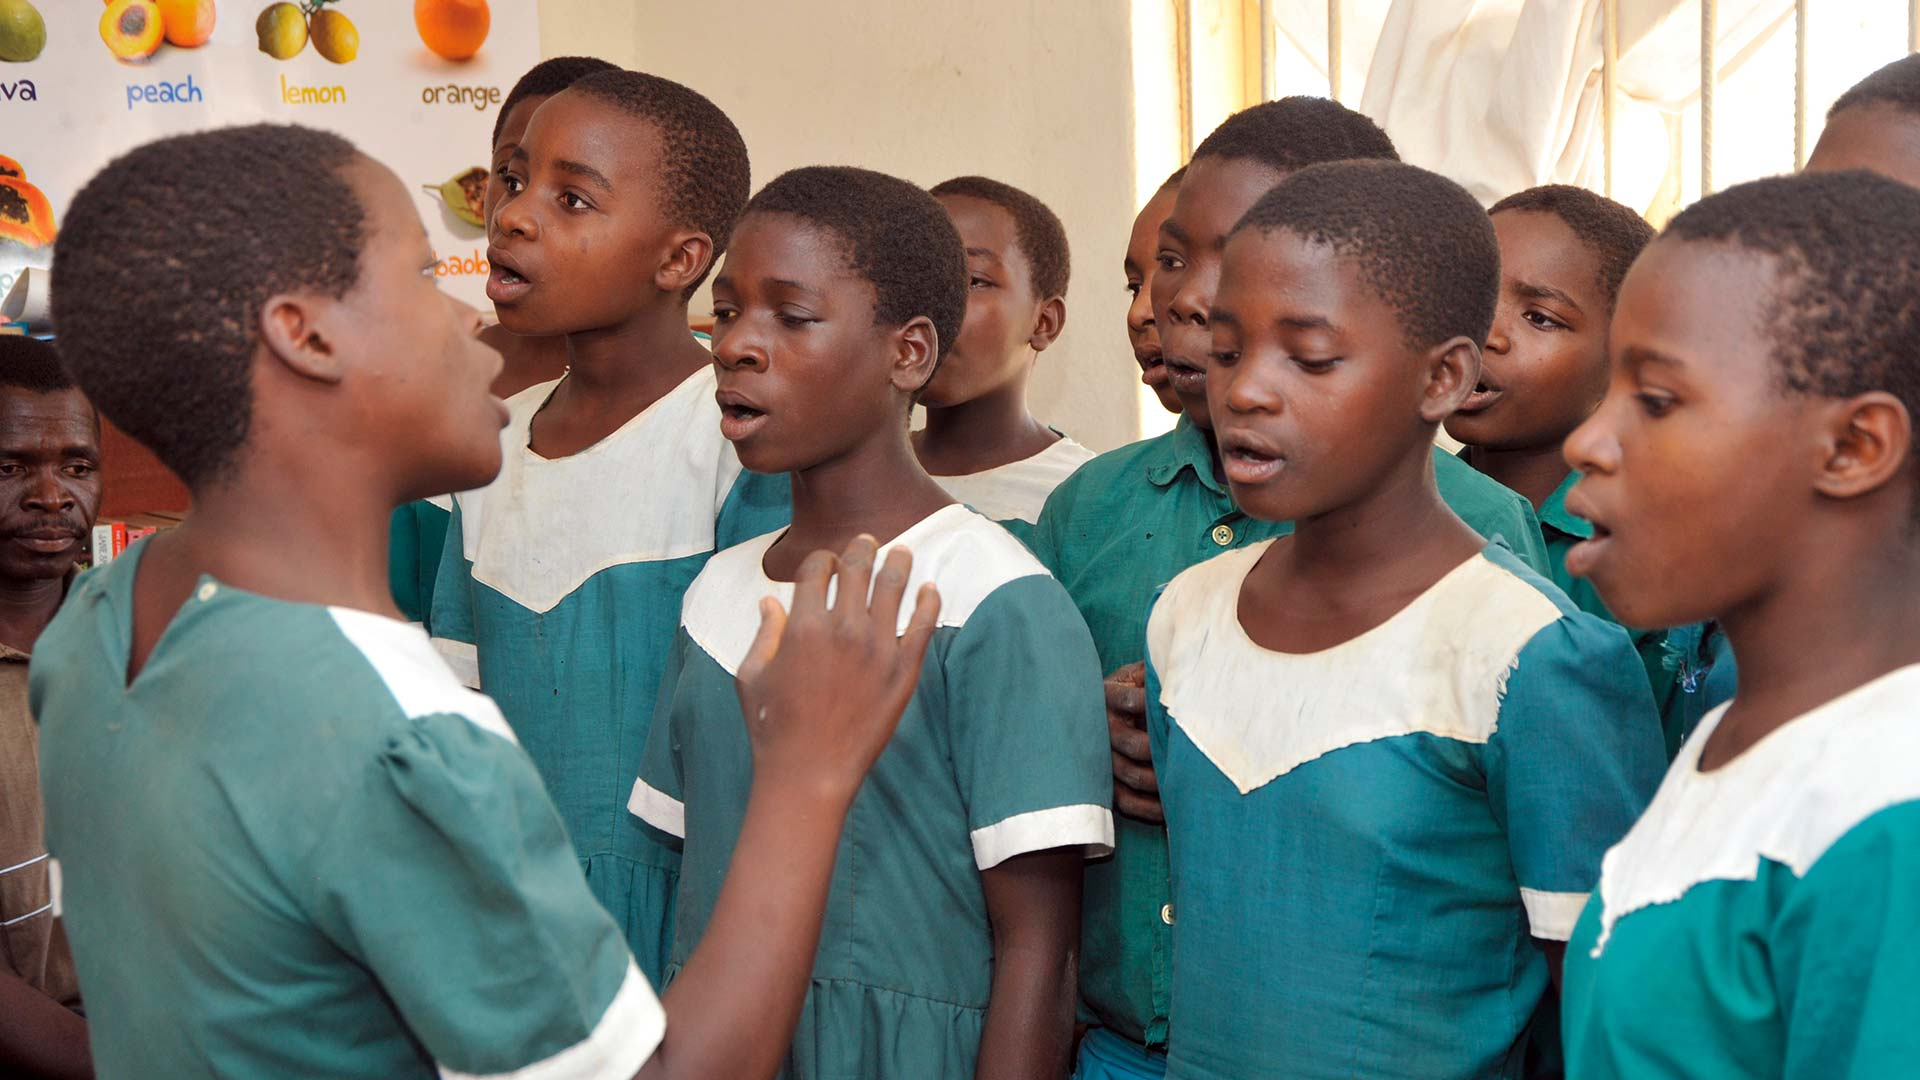 Malawian girl conducting a singing girl's choir